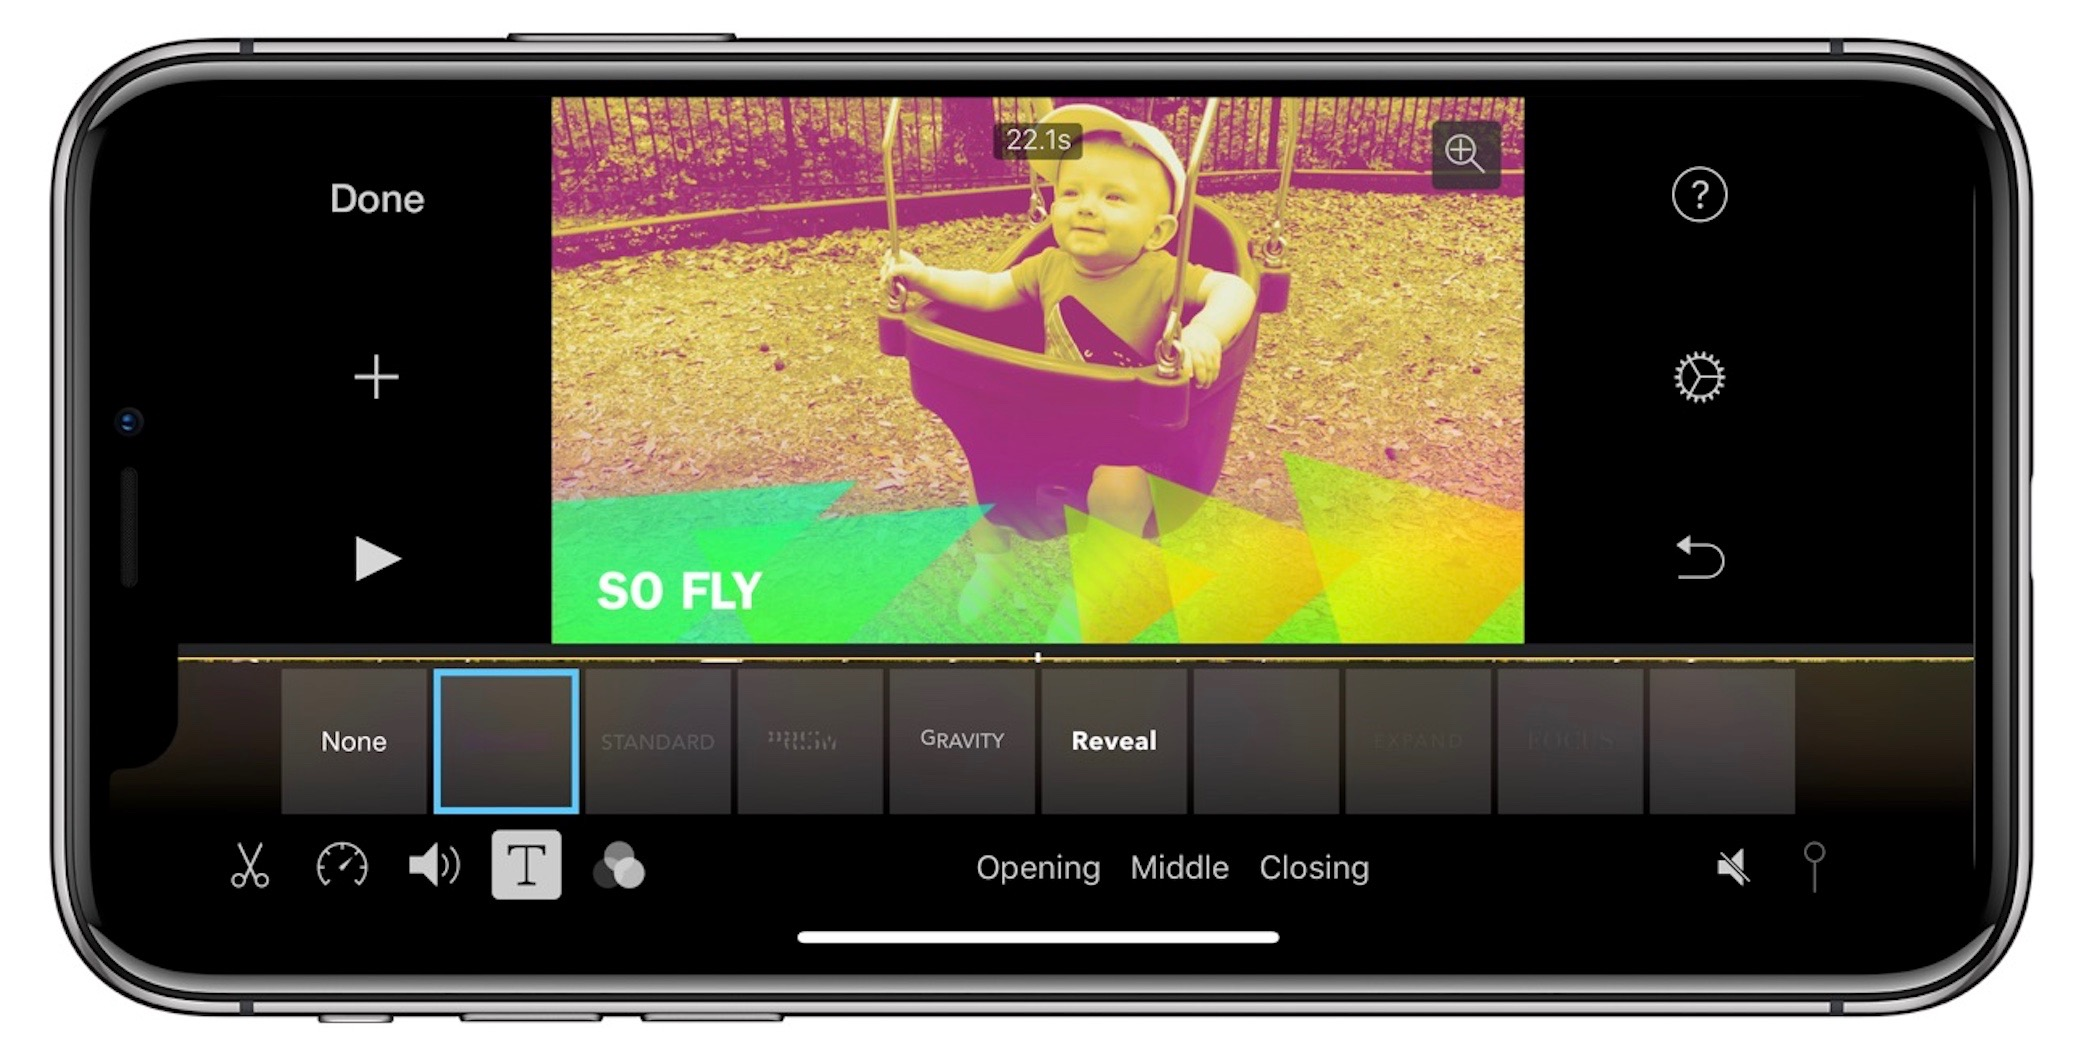 iMovie for iOS updated for iPhone X, now uses Metal for graphics processing